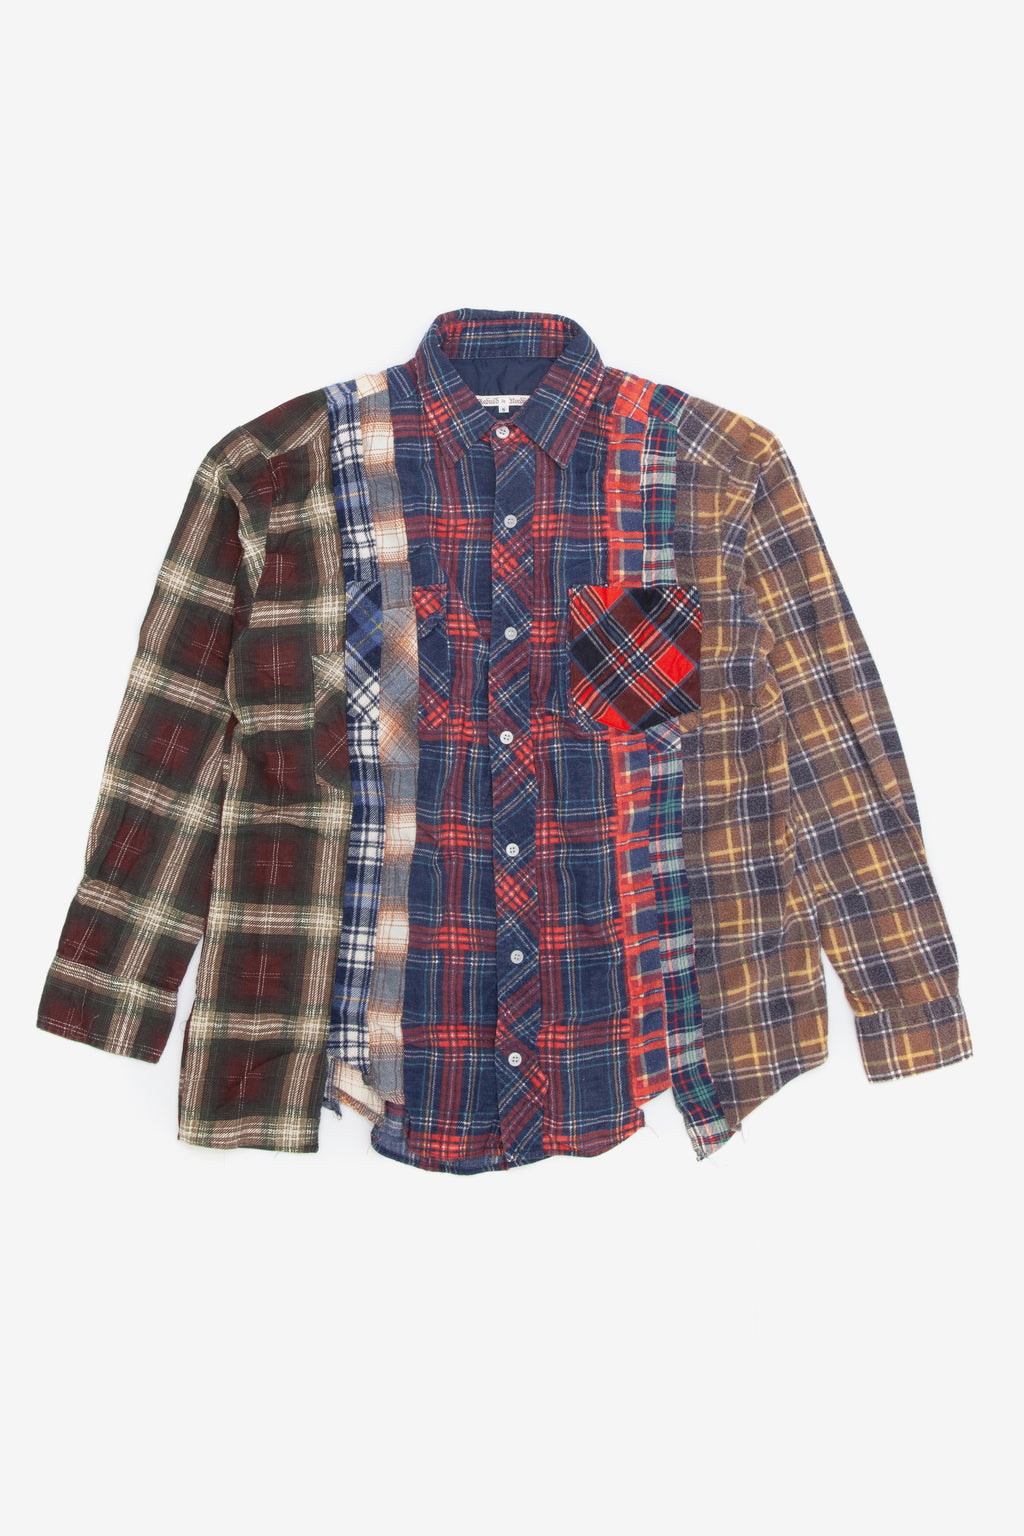 Needles rebuild 7 cuts flannel shirt - Small